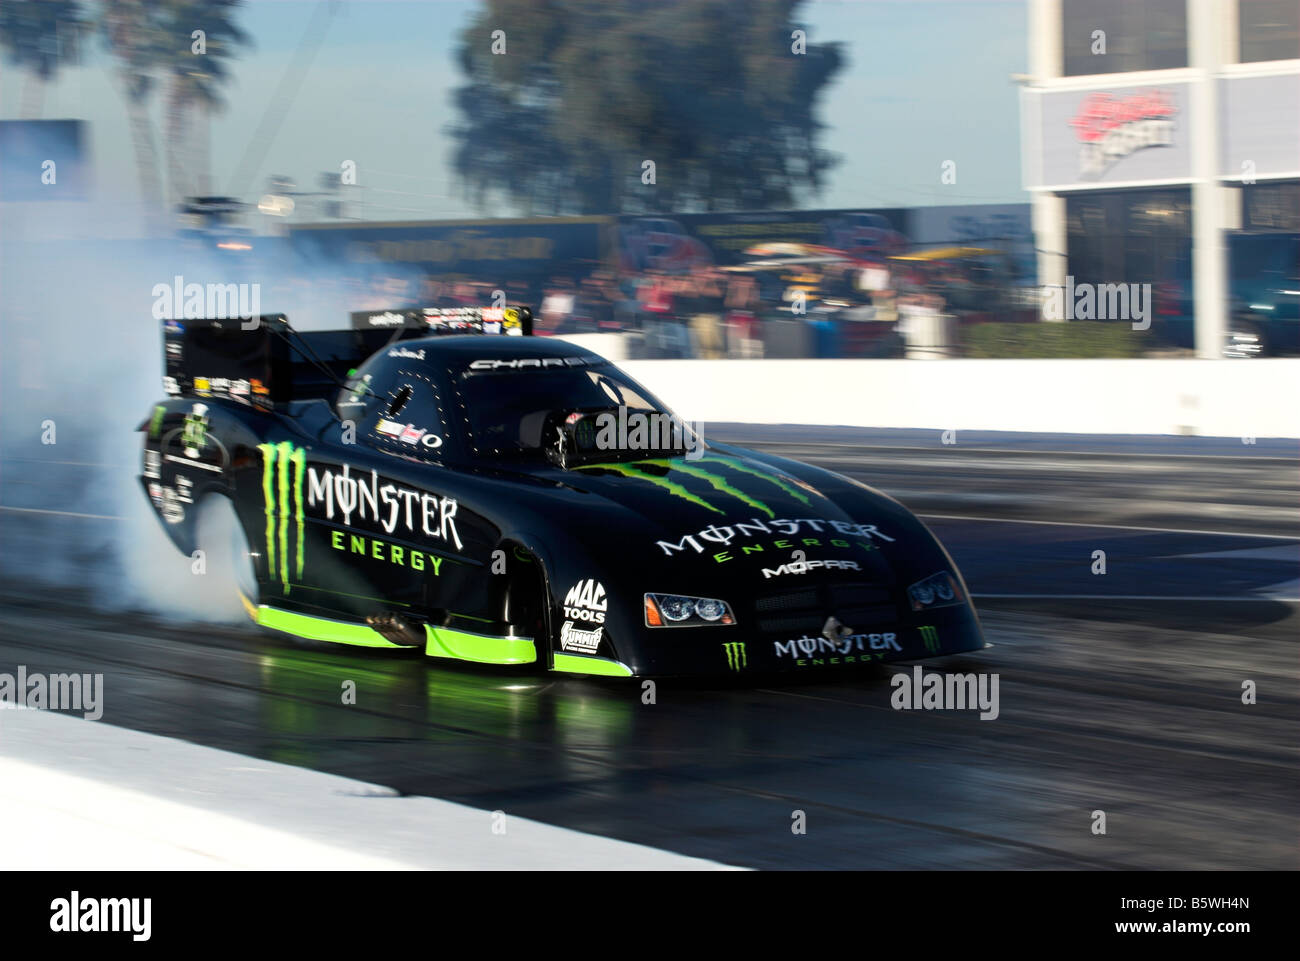 During the second round of eliminations of the NHRA Arizona Nationals, living legend John Force would suffer a massive engine explosion before losing control and crashing with opponent Jonnie Lindberg.